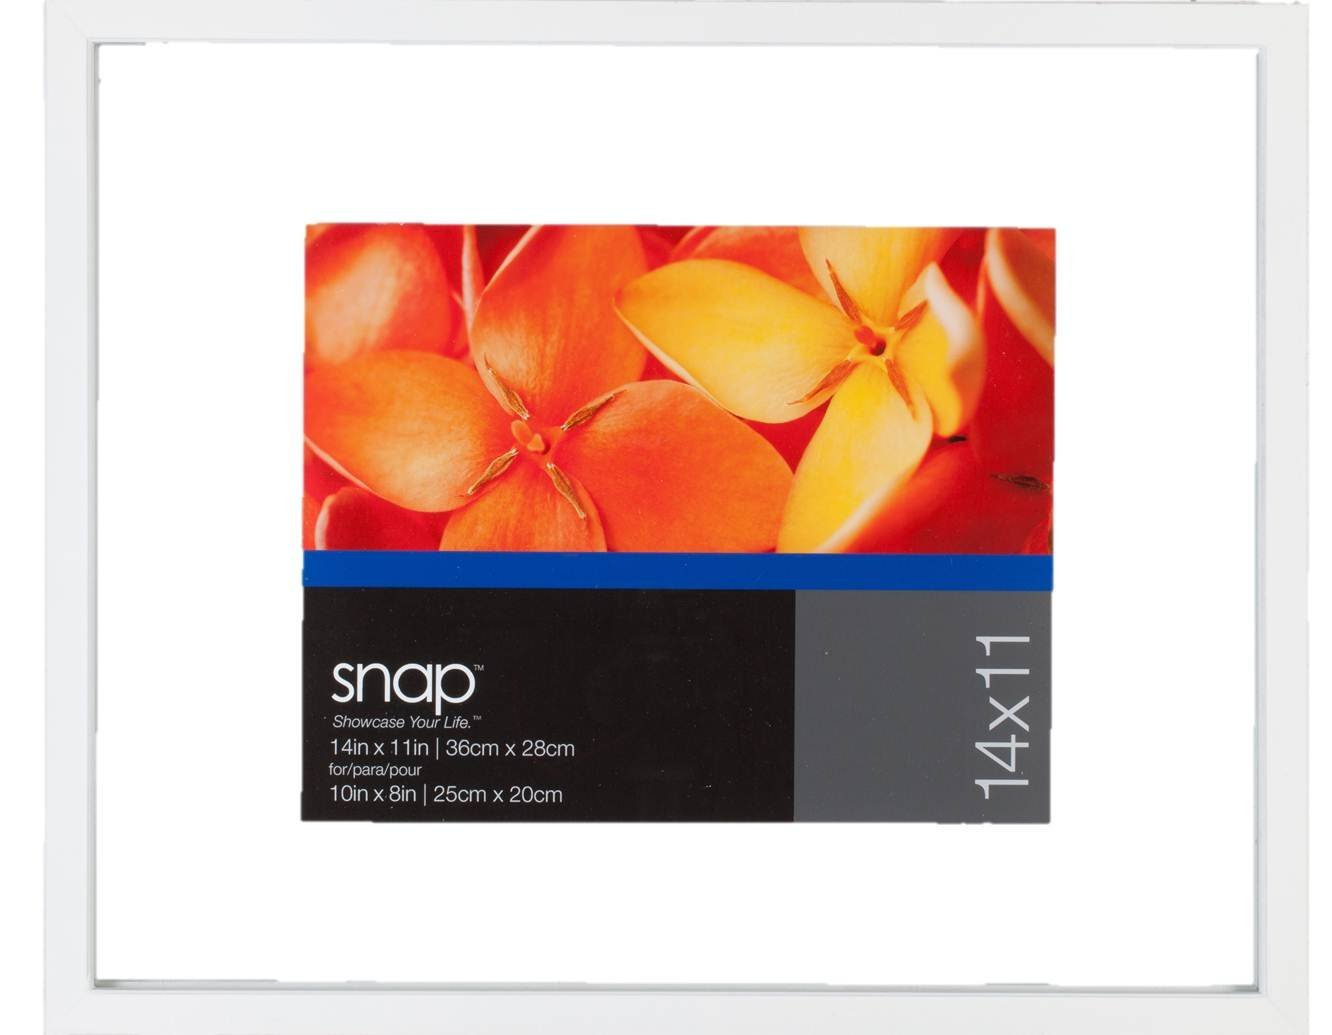 Get Quotations Snap 12x12 Float Frame For Floating Display Of 8x8 Image White